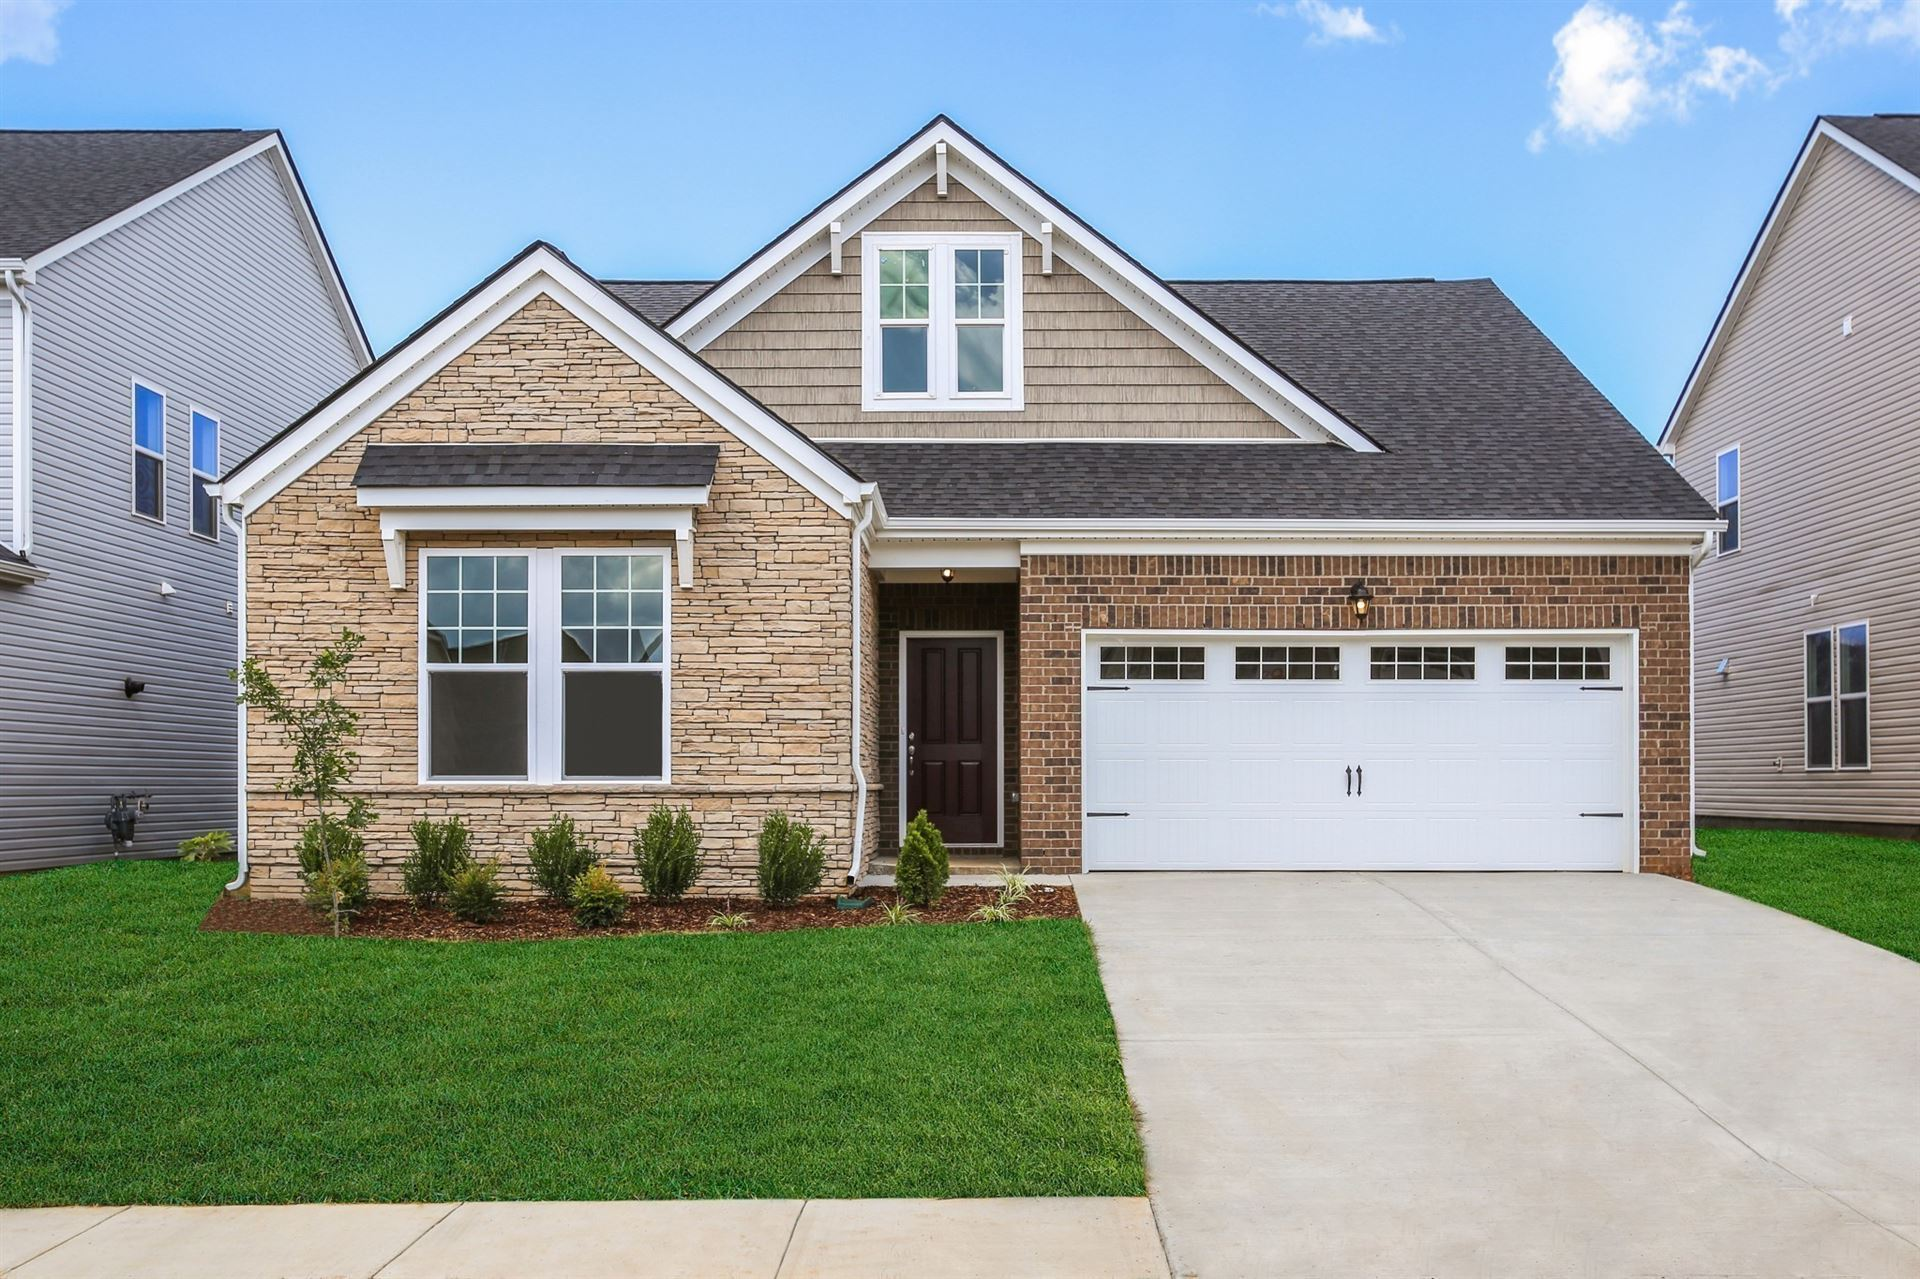 Photo of 2154 Corlew St To Be Built), Murfreesboro, TN 37130 (MLS # 2249064)